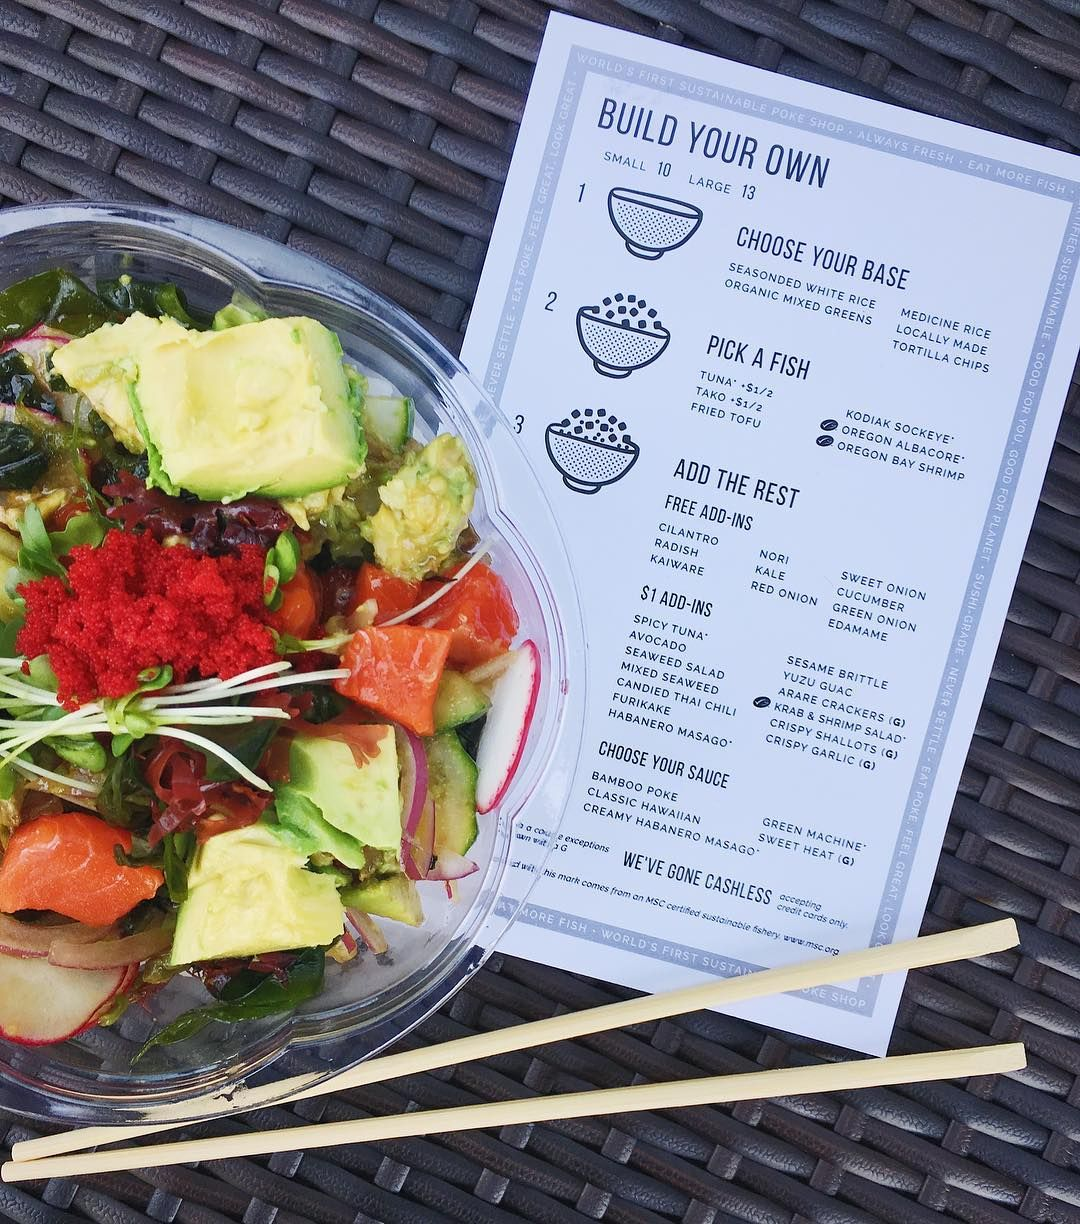 40 Restaurants To Open In Denver This Summer With Images Poke